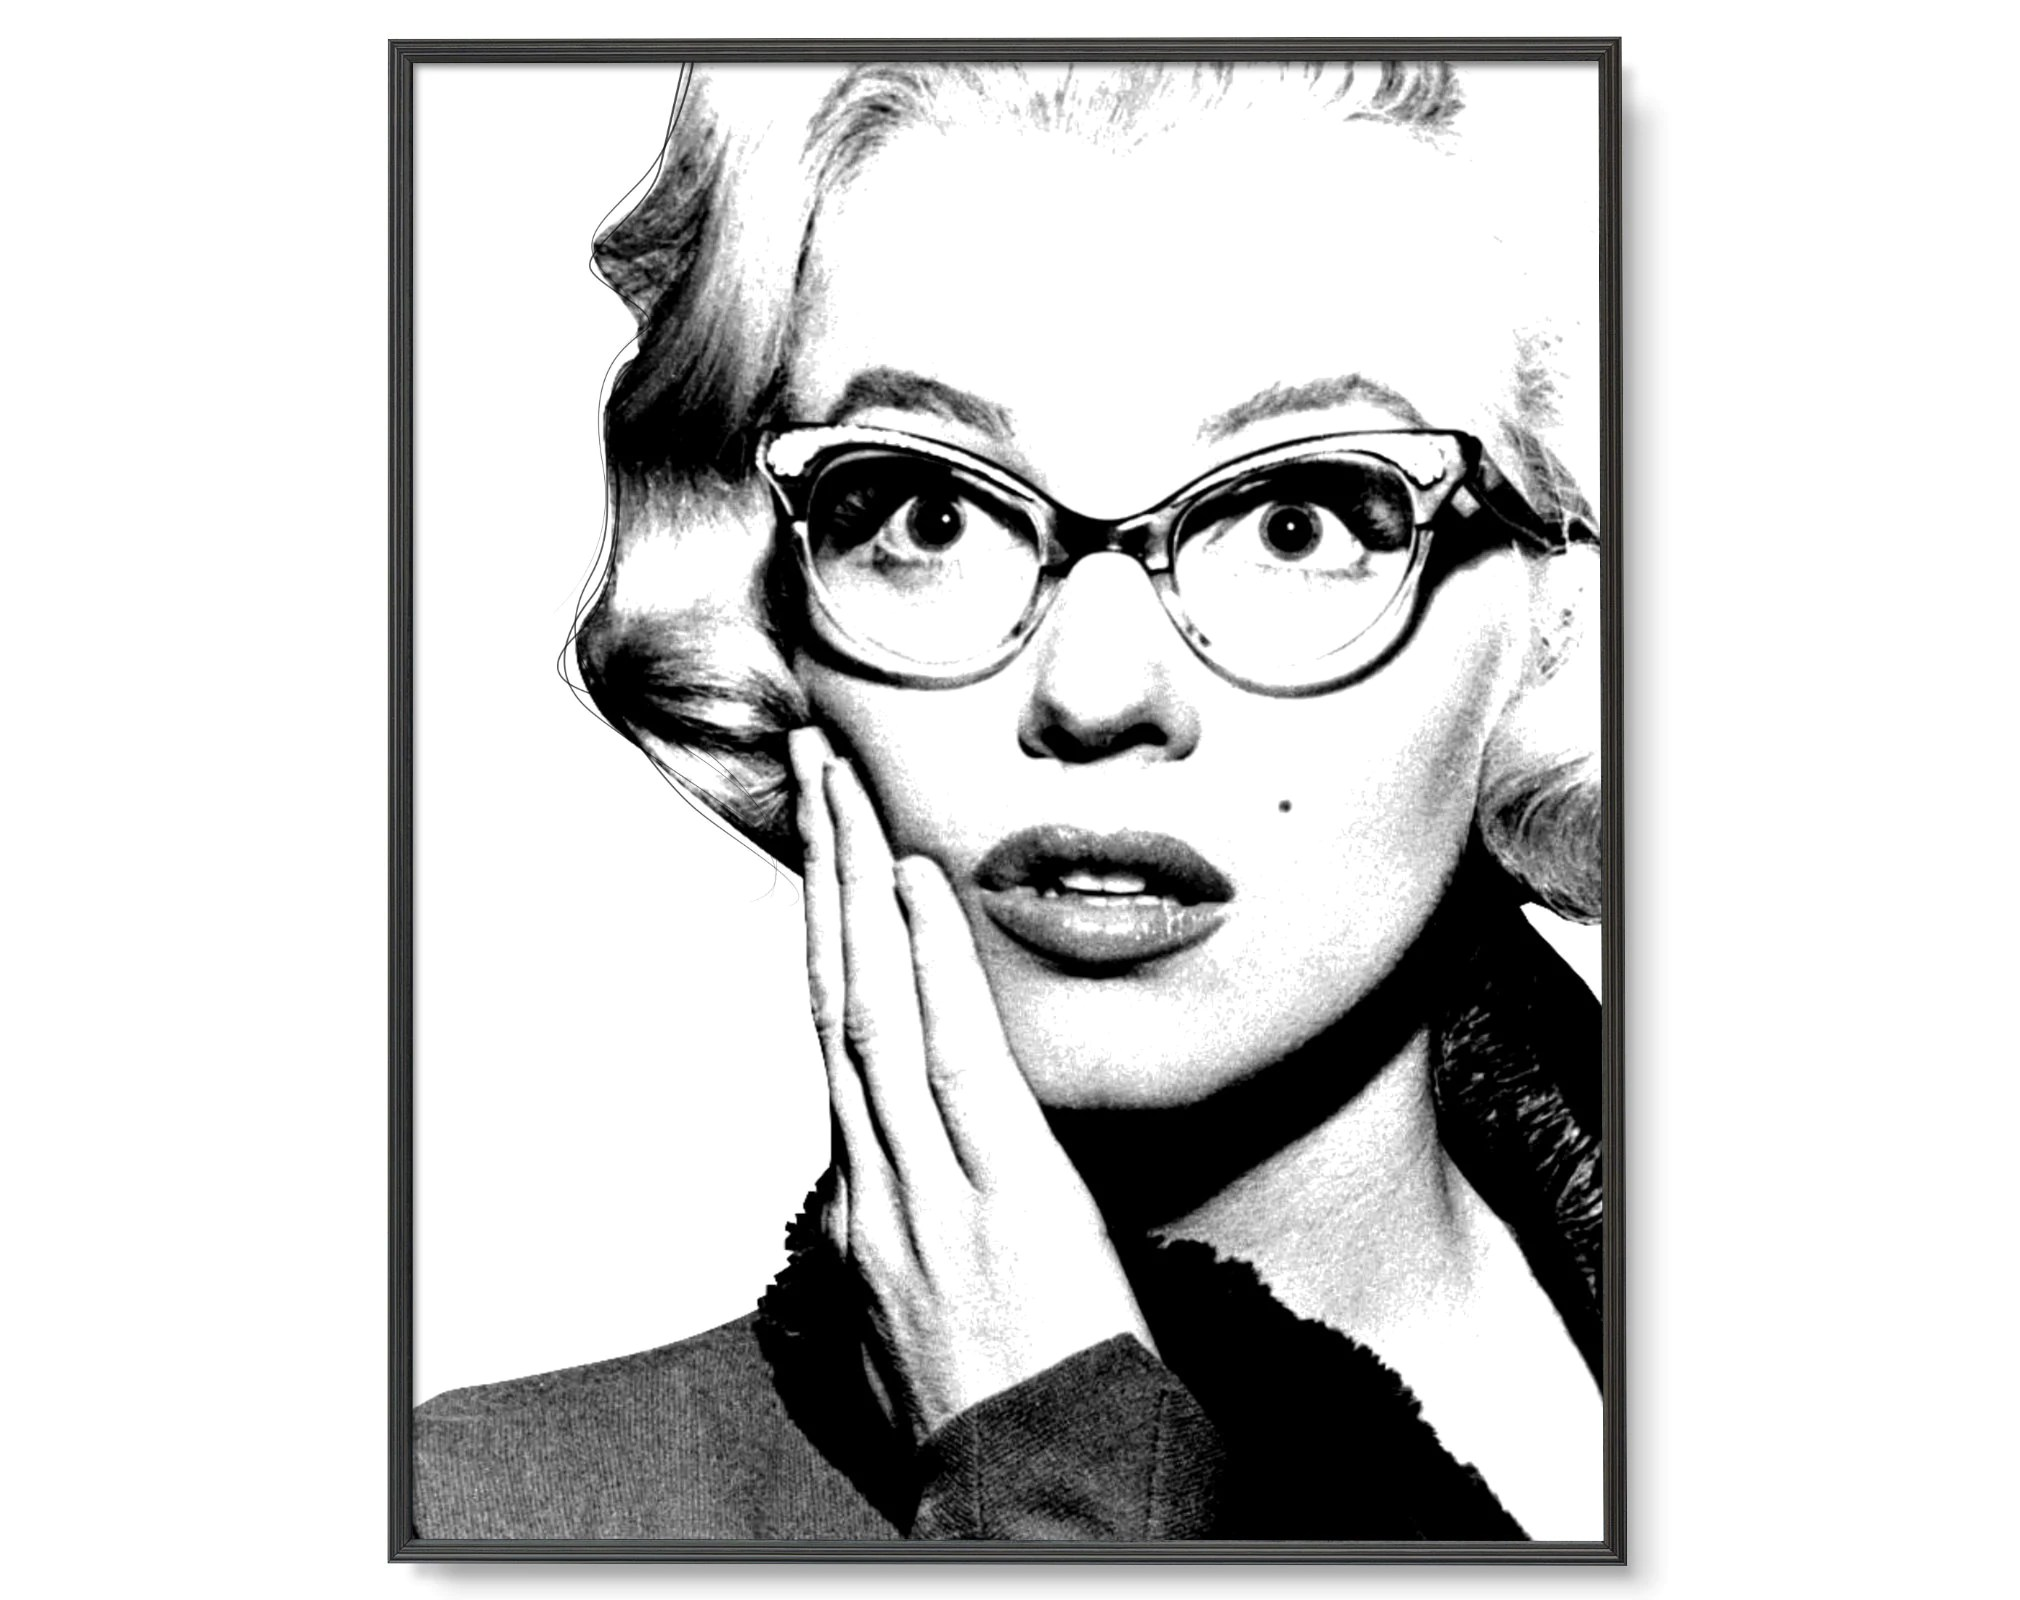 Marilyn Monroe Poster Marilyn Monroe Art Printed Shipped Marilyn Monroe Poster Marilyn Wall Art Marilyn Monroe Wall Art Marilyn Monroe Glasses Hollywood